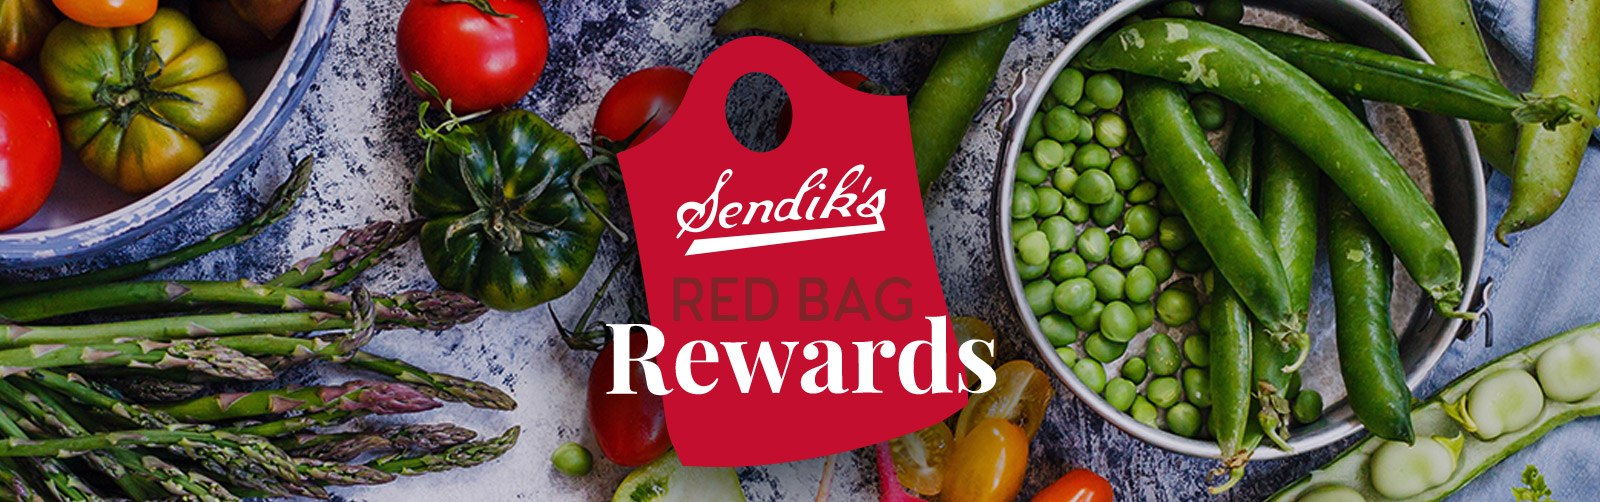 Sendik's Red Bag Rewards